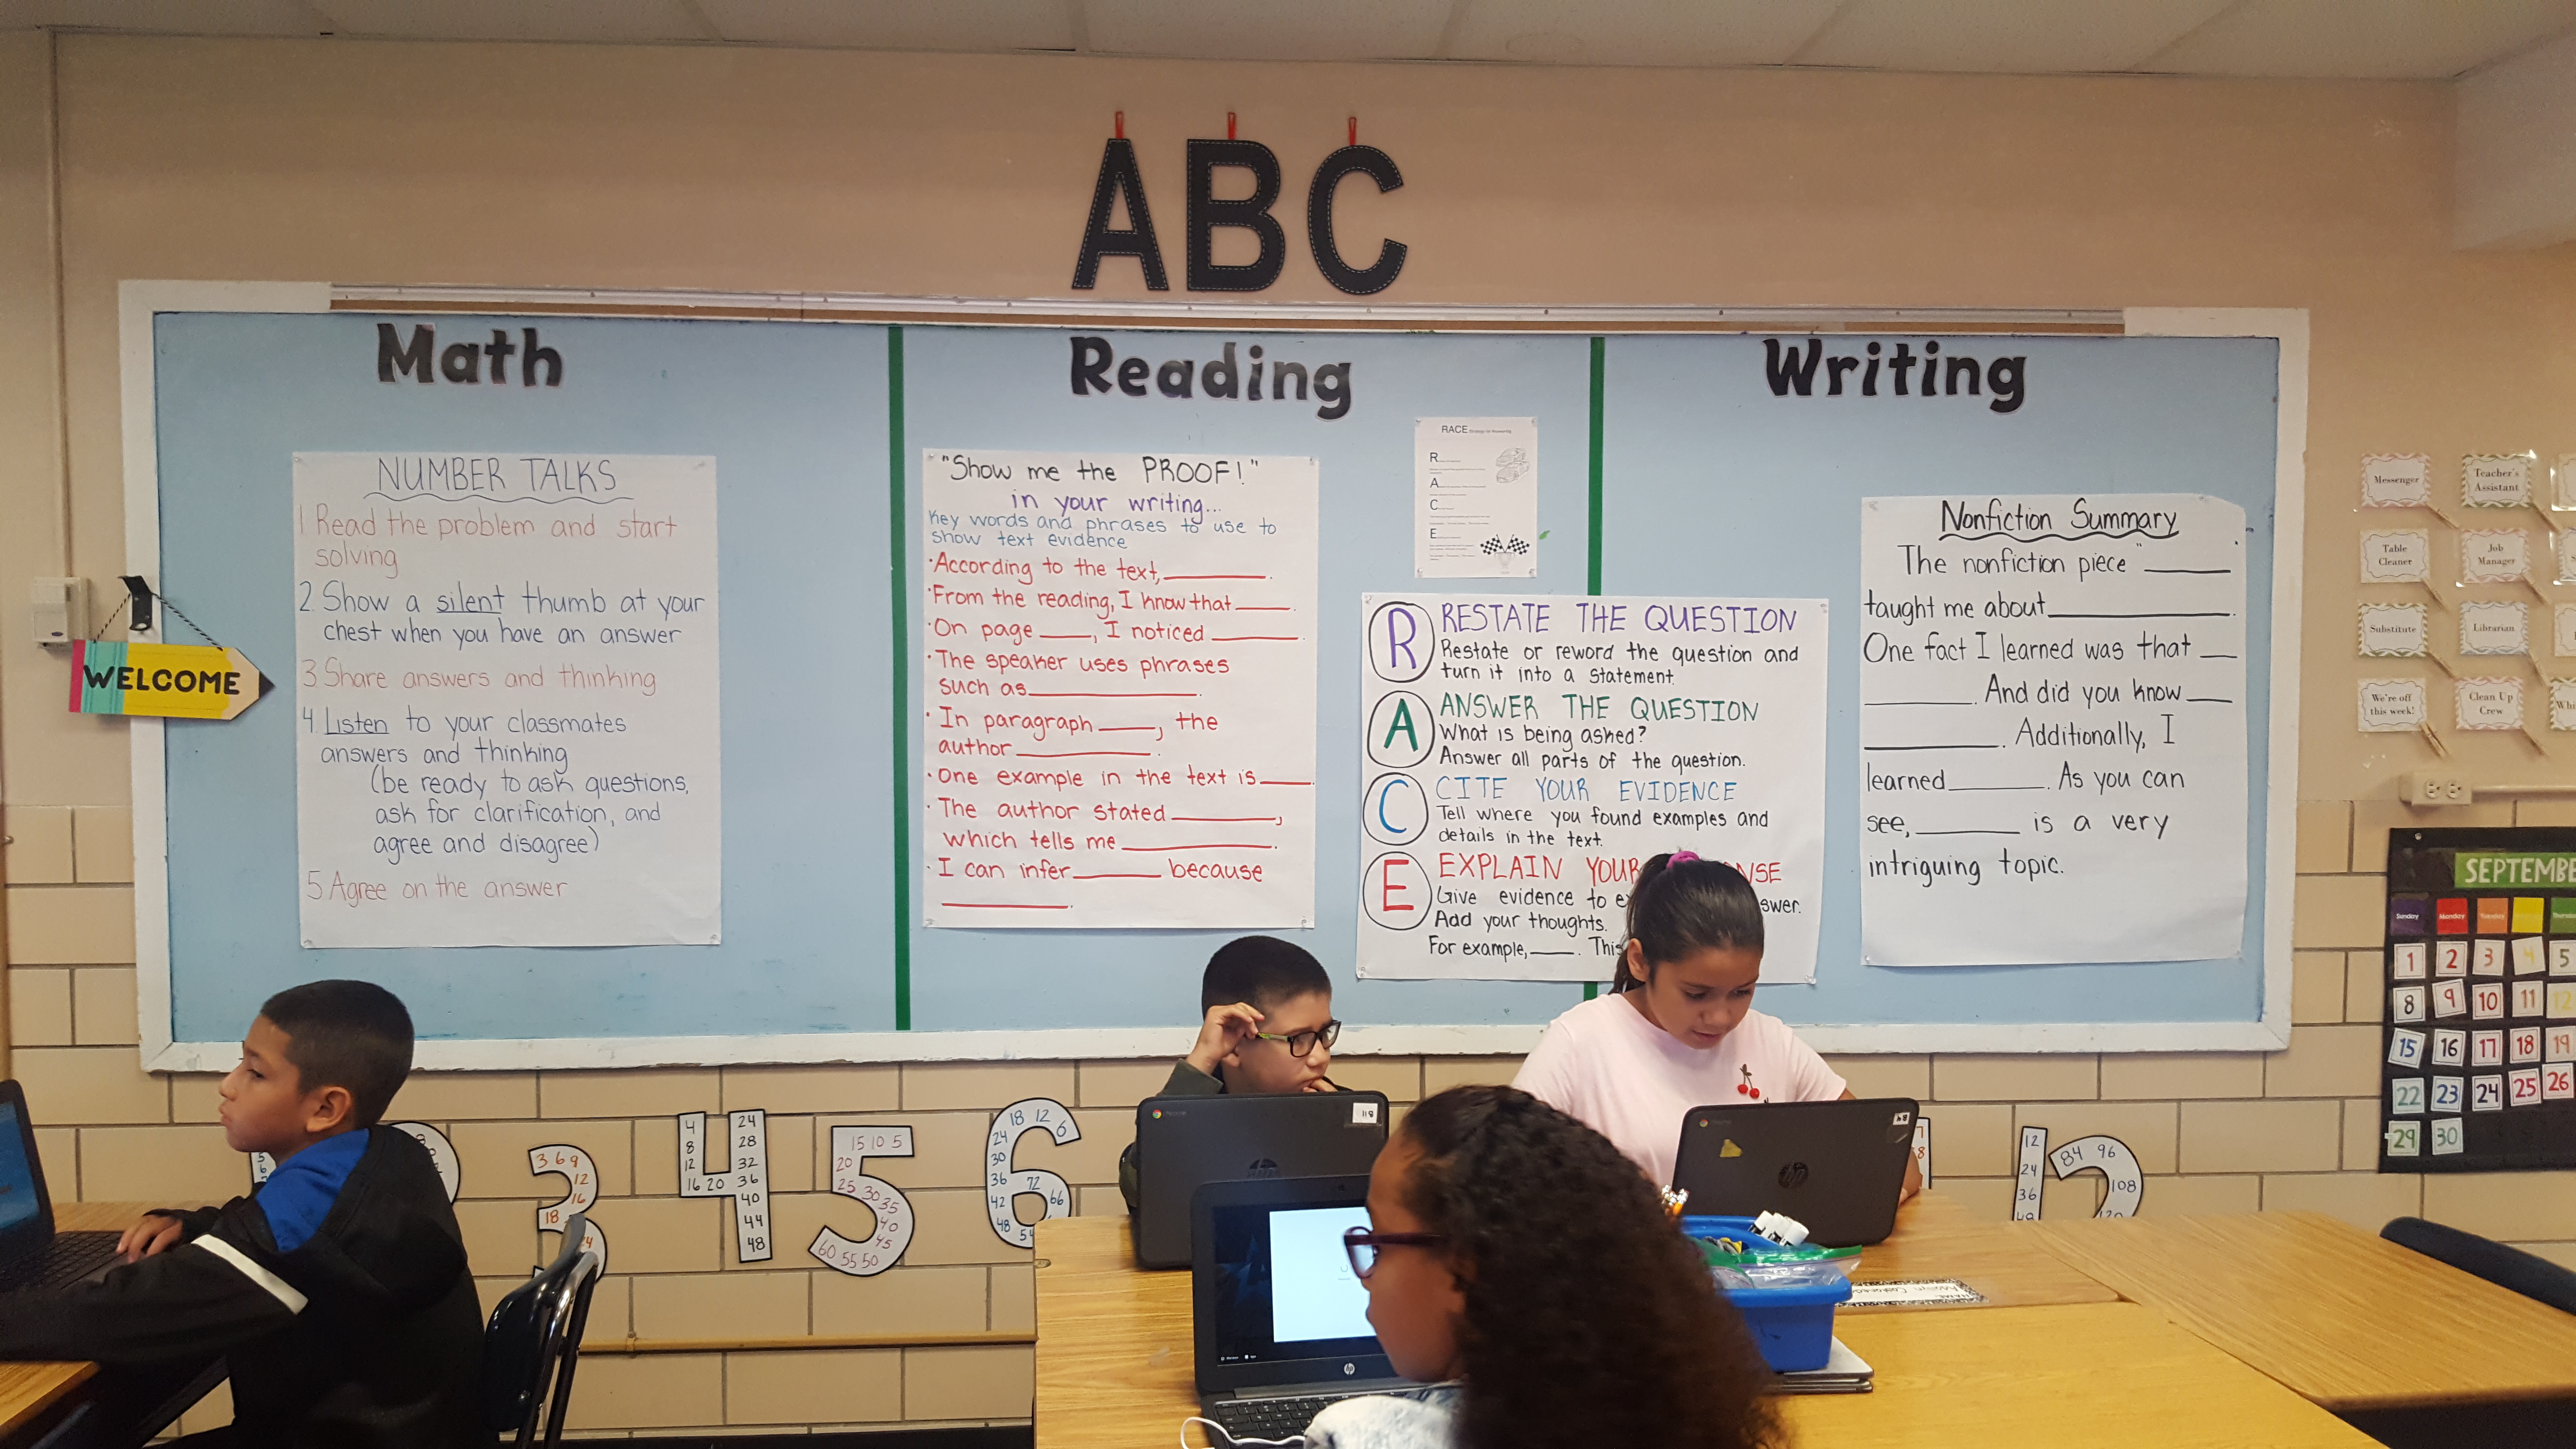 Elementary students work at their desks. The wall behind them is decorated with math, reading, and writing lessons. Large letters ABC are above.